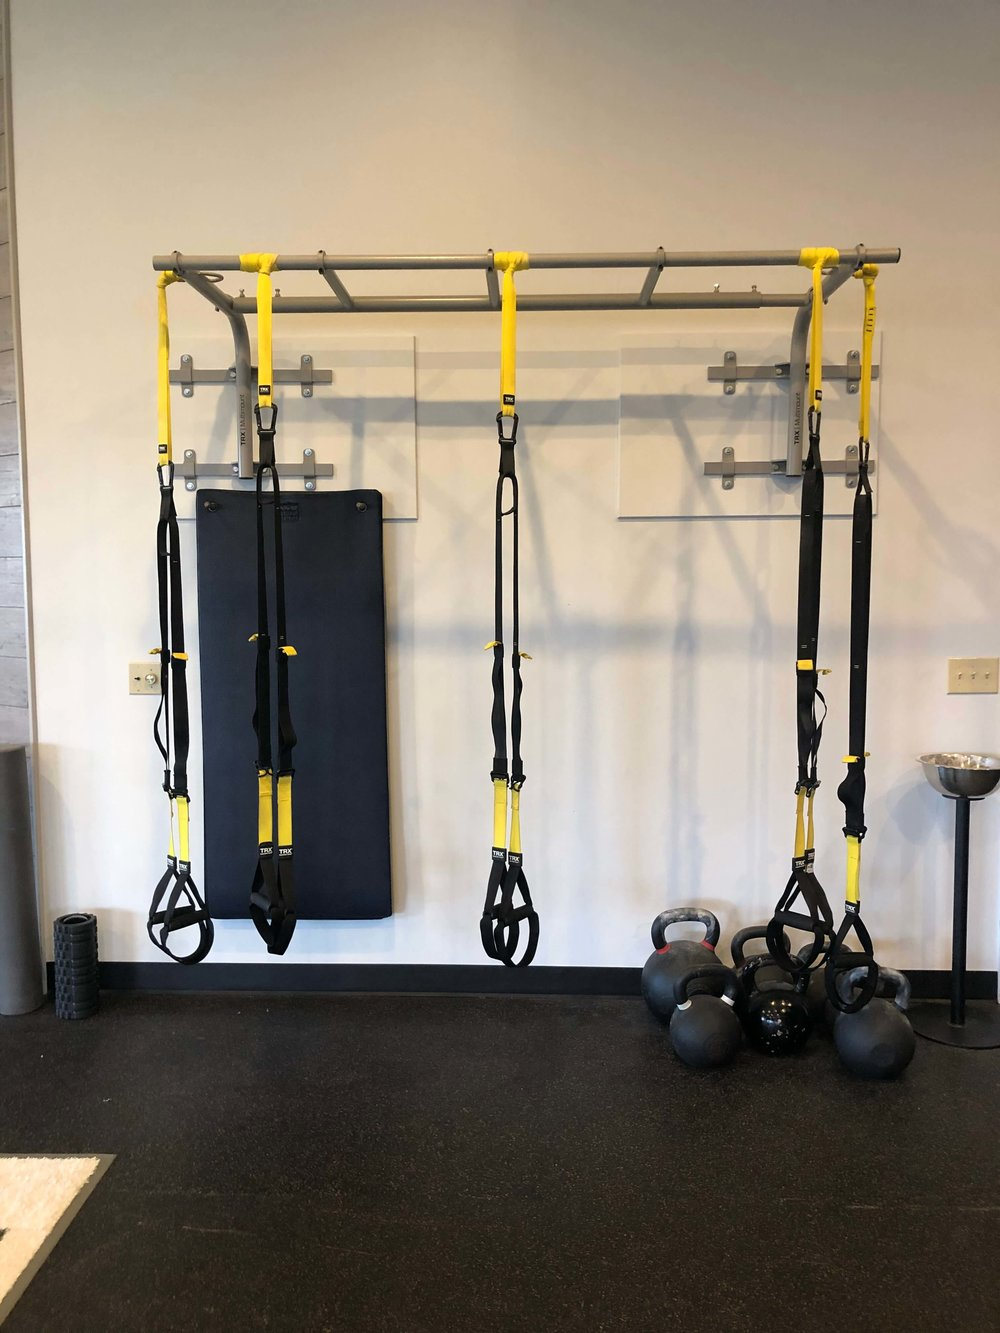 trufit-kettlebell-personal-group-training-sports-performance-gym-valparaiso-workout-fitness-trx.jpg